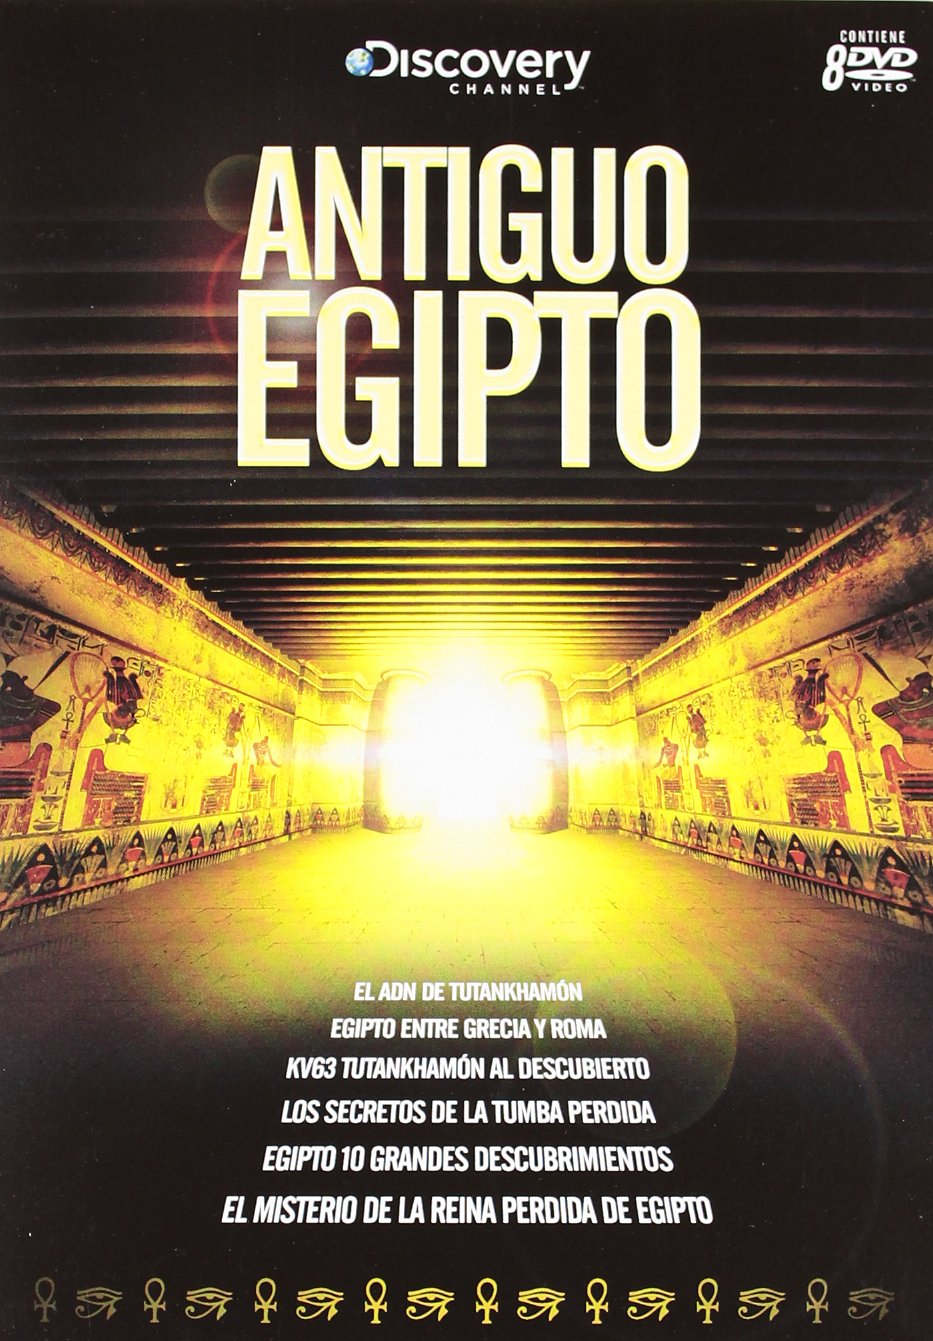 Pack Antiguo Egipto Discovery Chanel (8) [DVD]